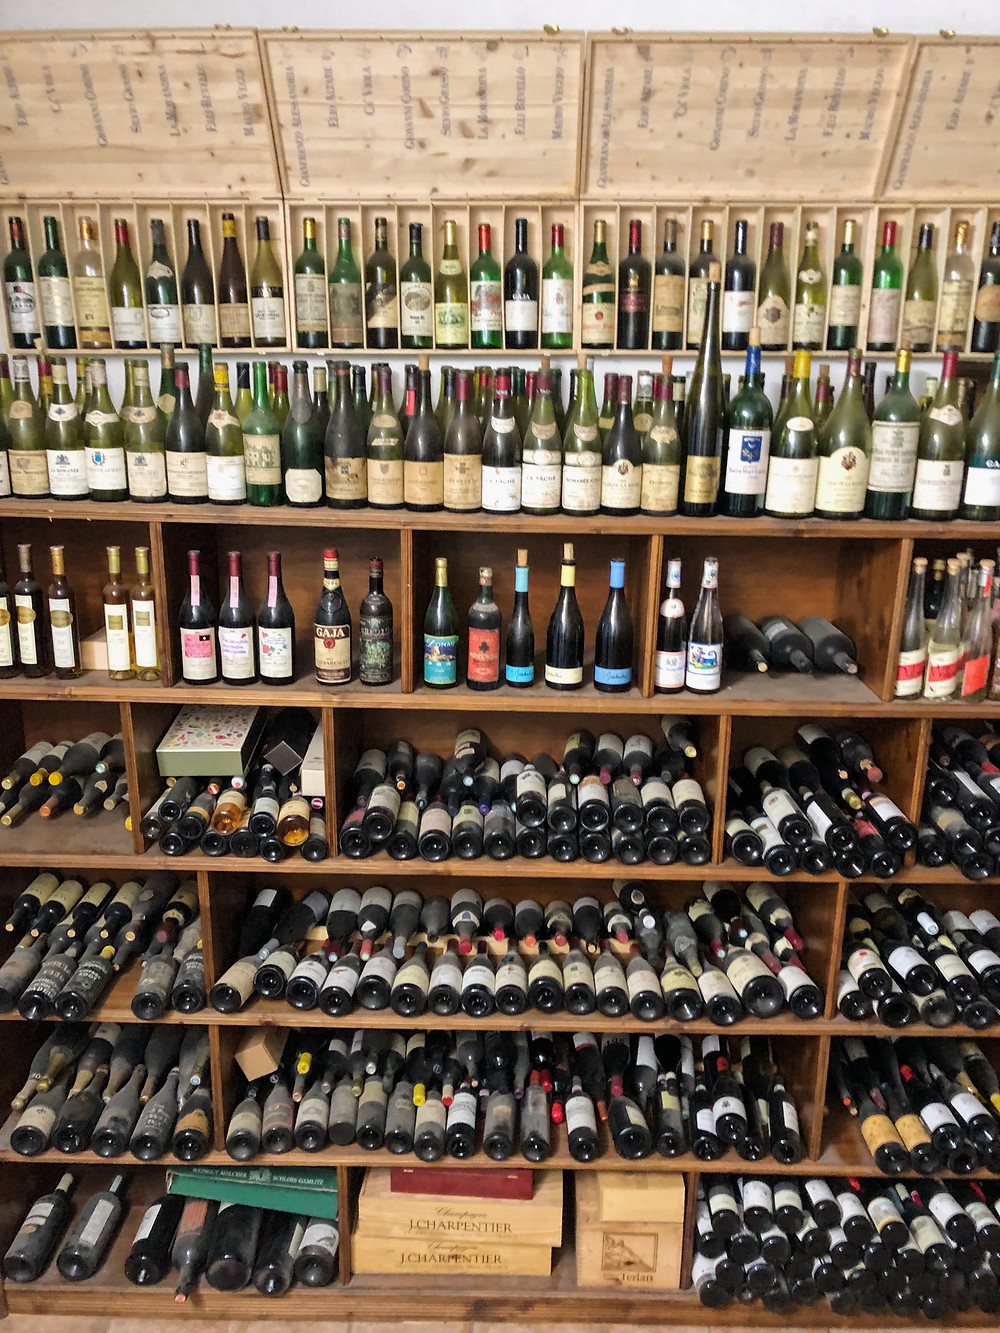 Home wine library collection full of bottles at Elio Altare winery in La Morra